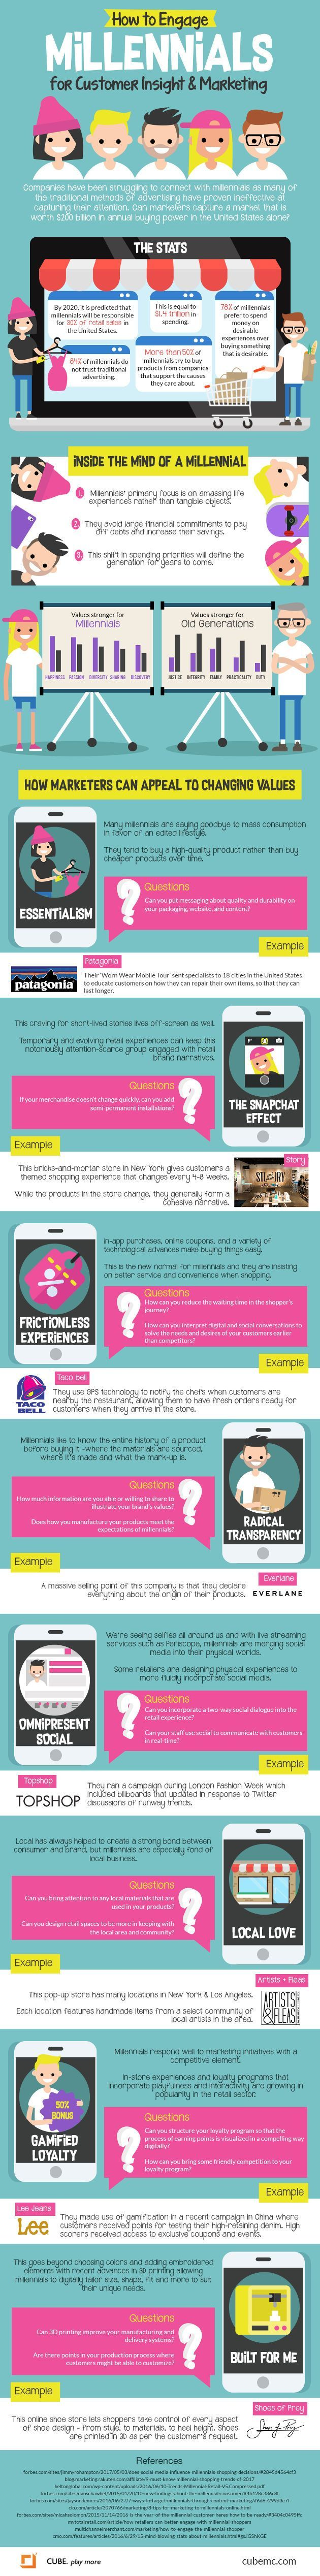 #Marketing #Infographics - How to Engage Millennials for Customers Insight and Marketing